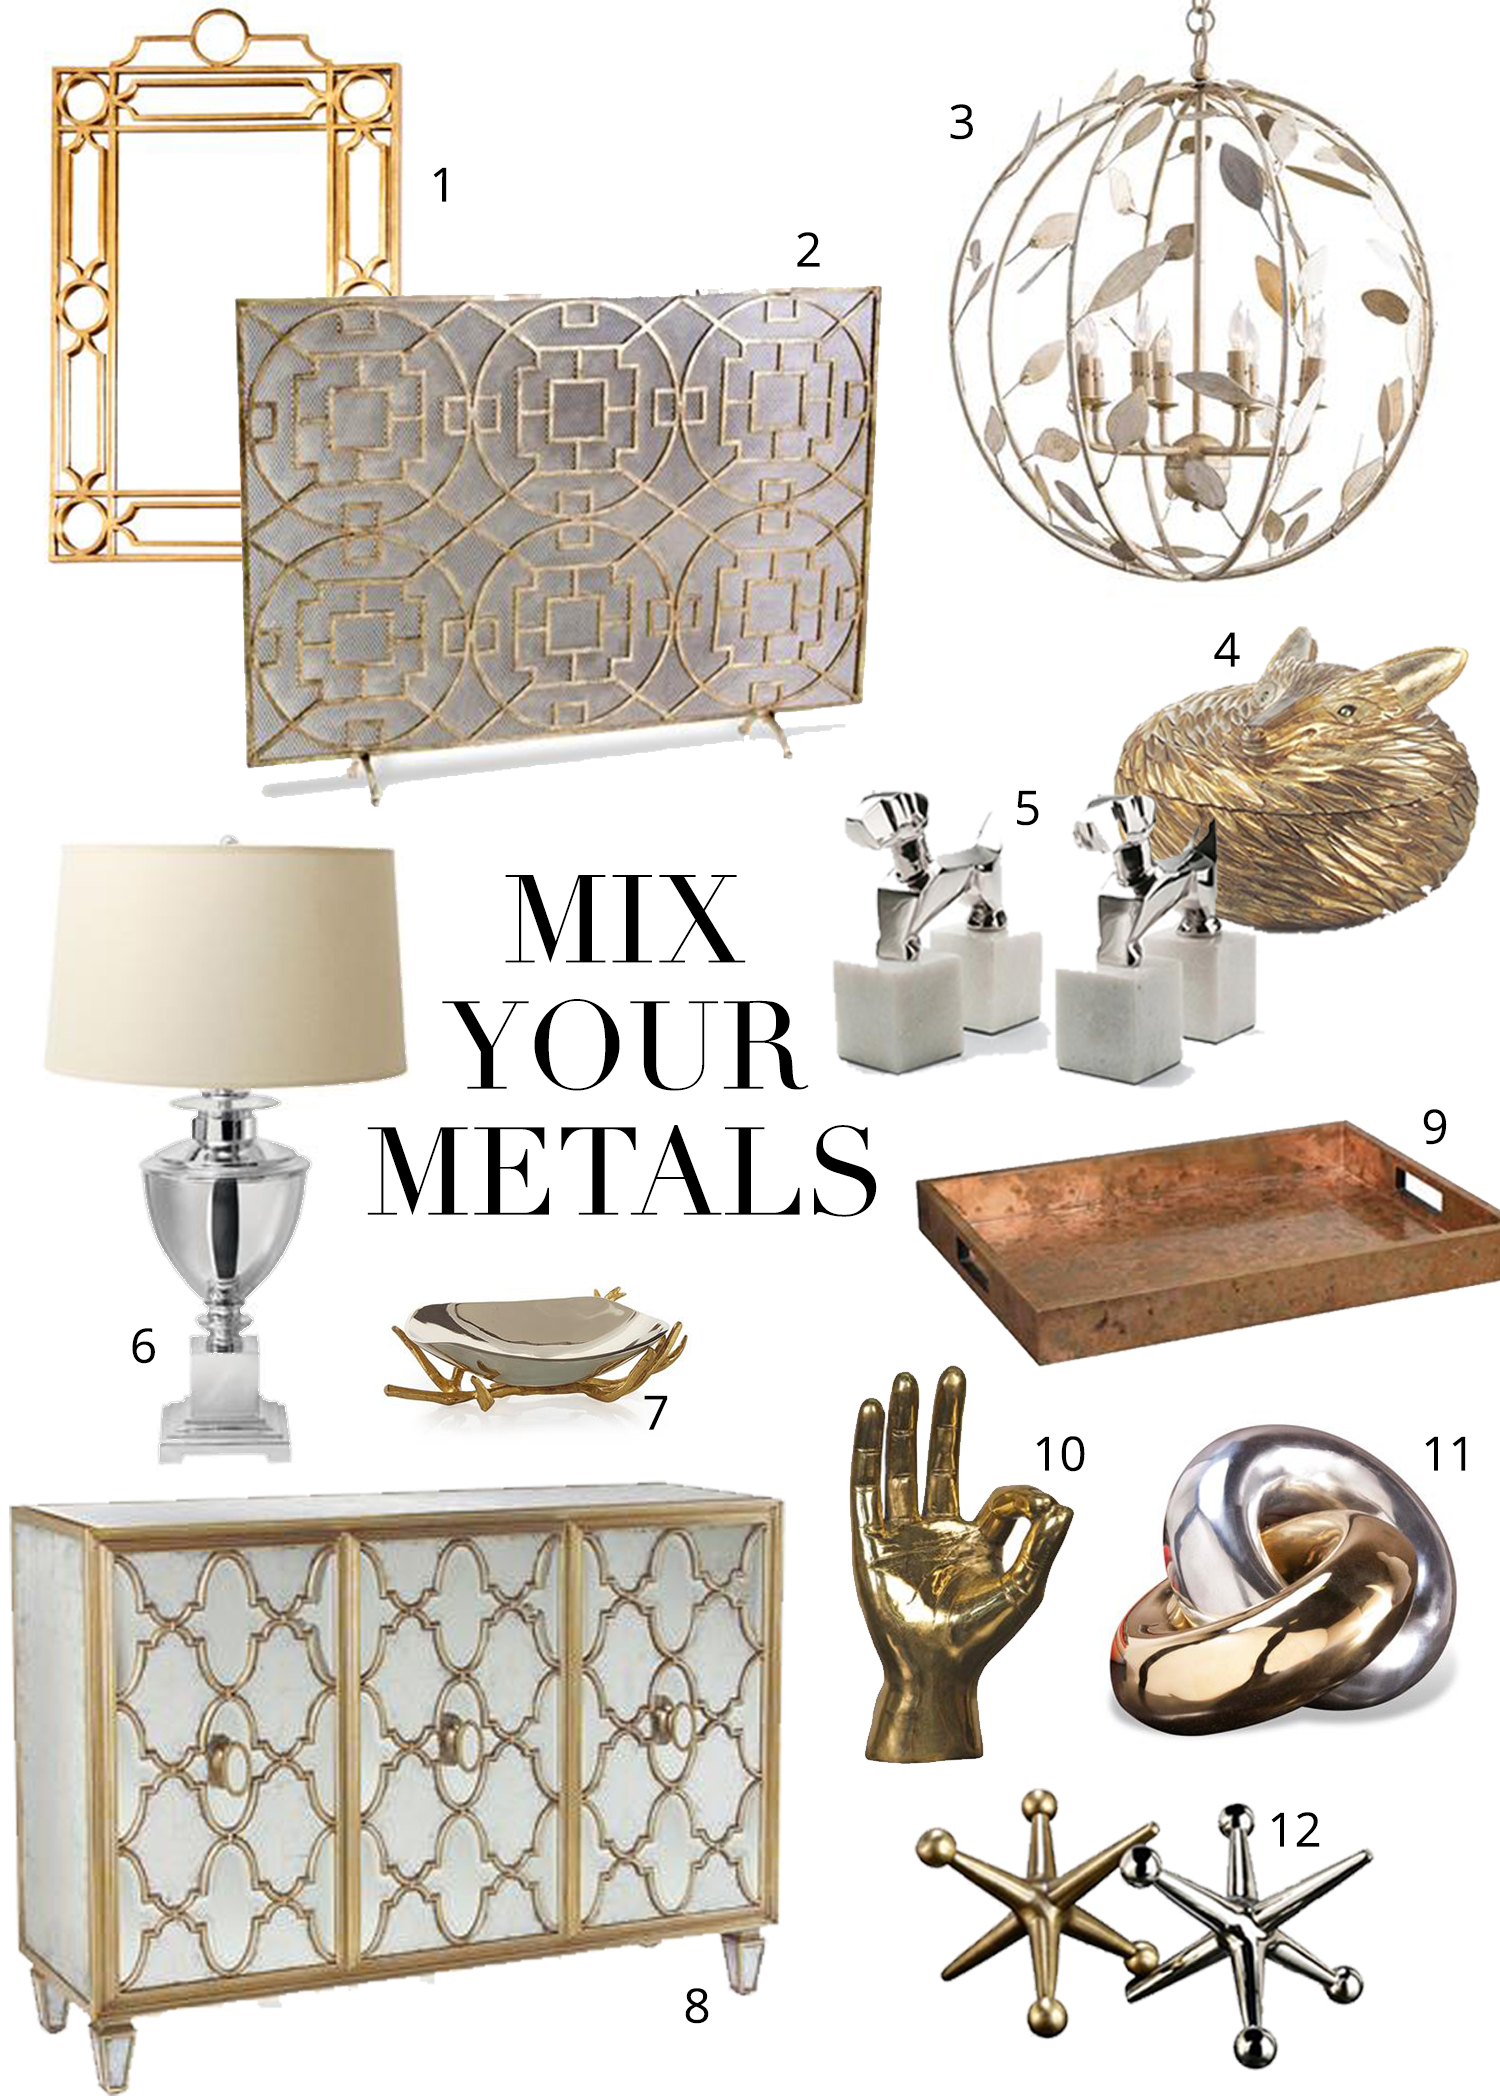 Admirable Mixing Metals The Dos And Donts Kathy Kuo Blog Kathy Interior Design Ideas Inesswwsoteloinfo